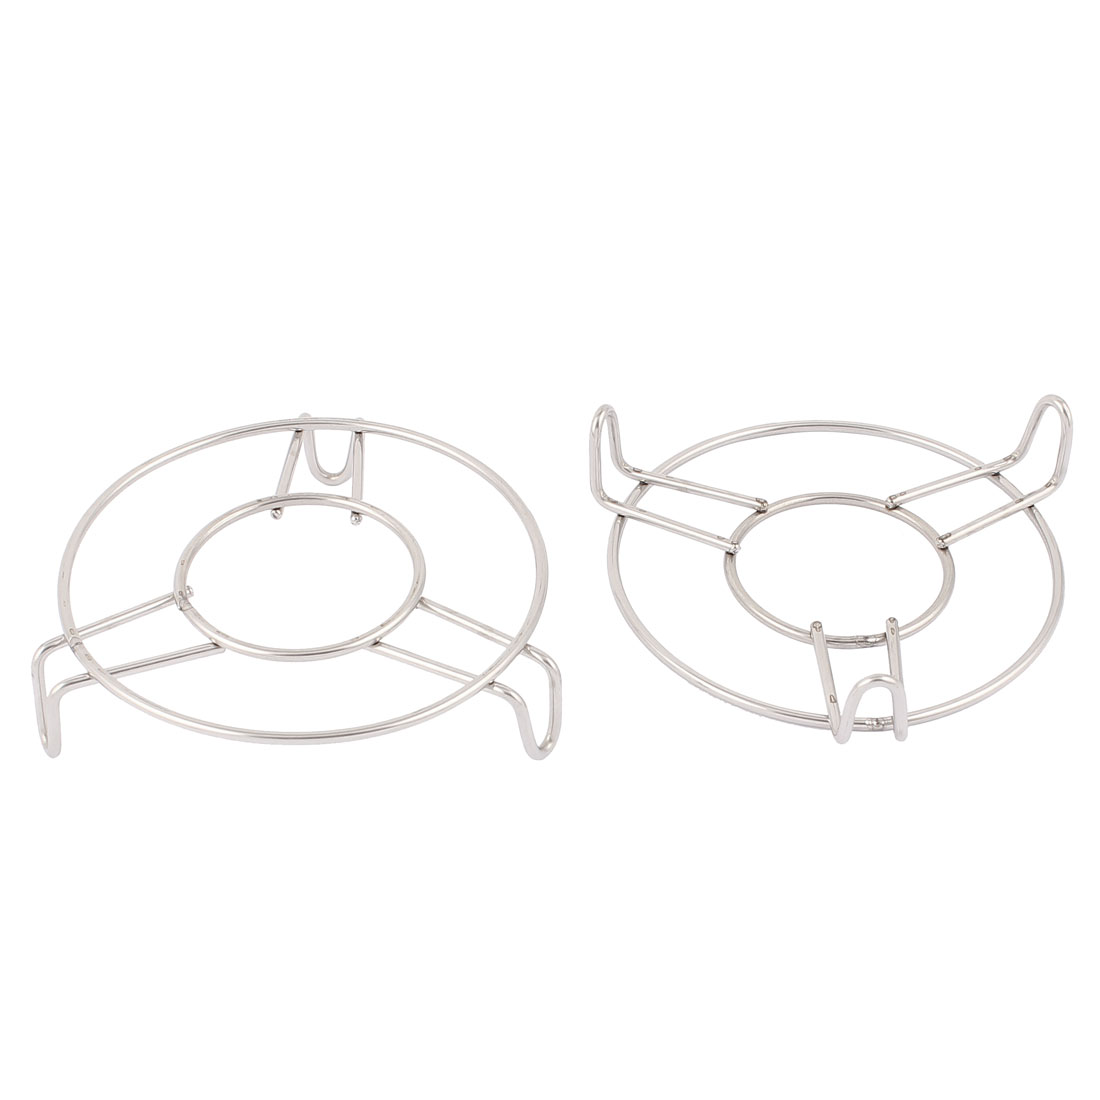 """Kitchen Metal Round Food Cooking Steaming Rack Stand 4"""" Dia Silver Tone 2pcs"""